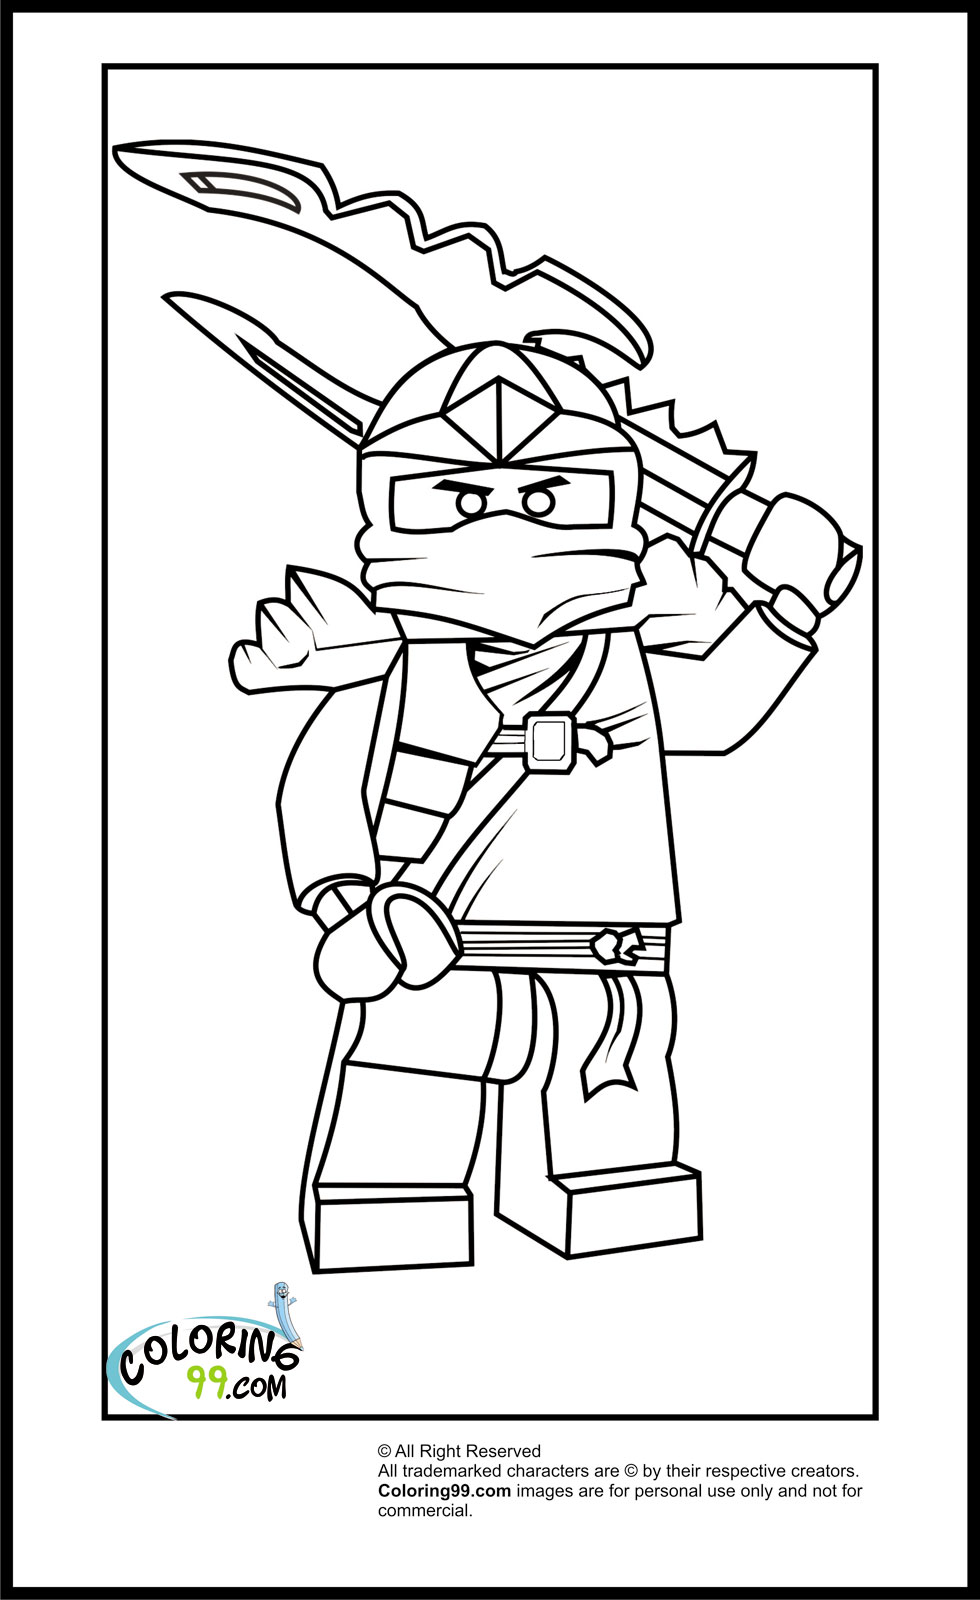 Lego Ninjago Coloring Pages Free Printable Pictures Lego Ninjago Colouring Pages To Print